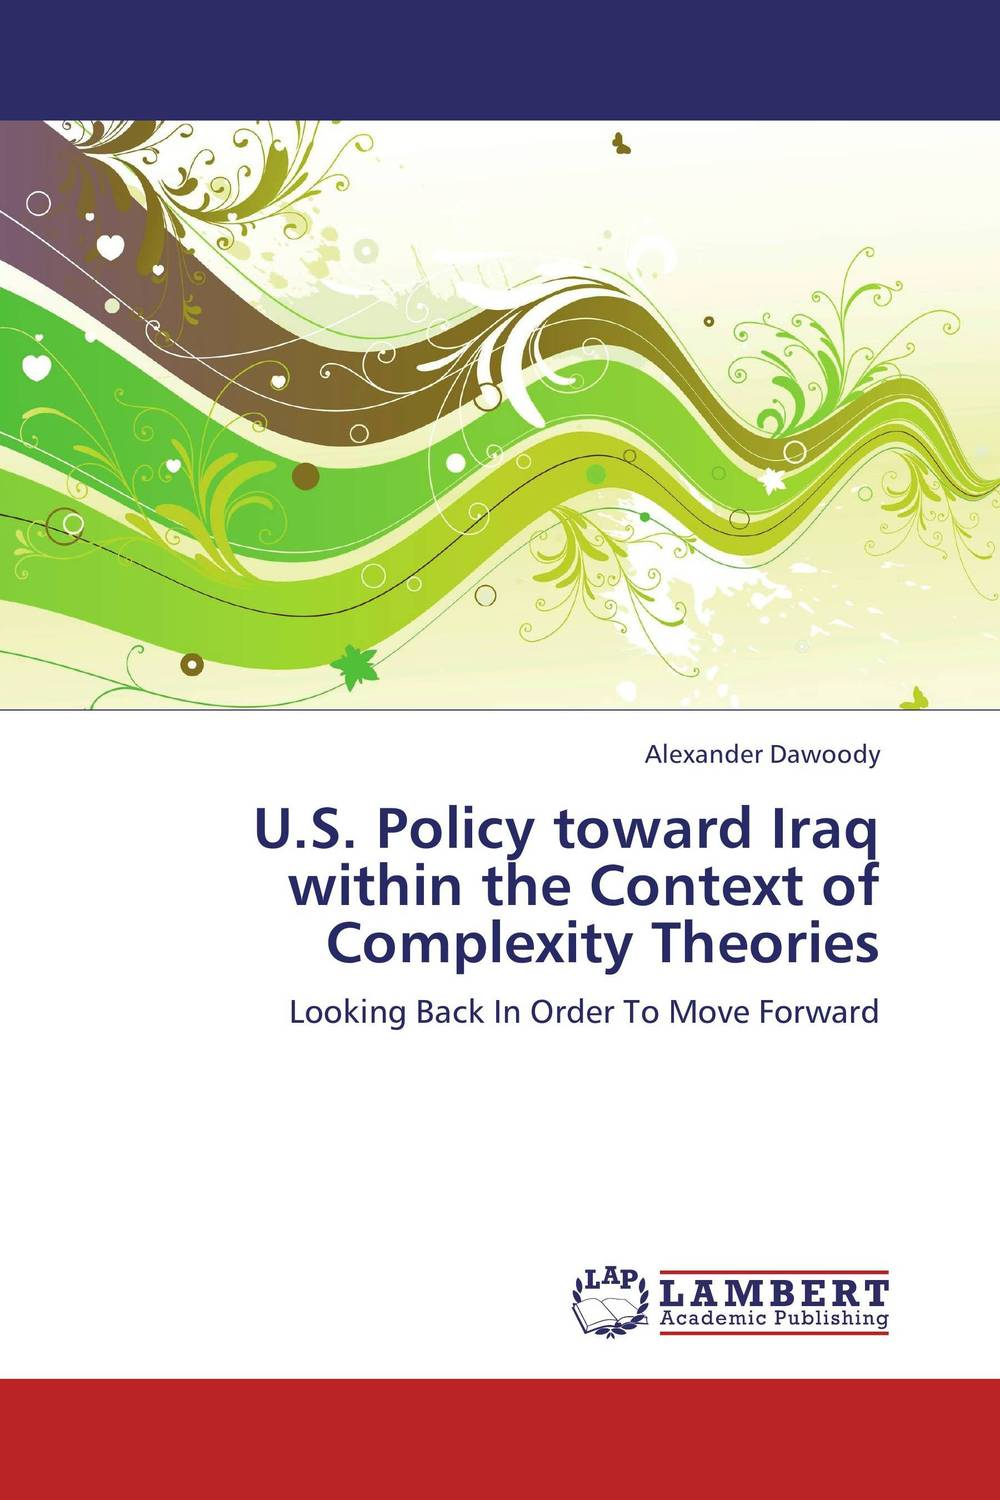 U.S. Policy toward Iraq within the Context of Complexity Theories theories of computational complexity